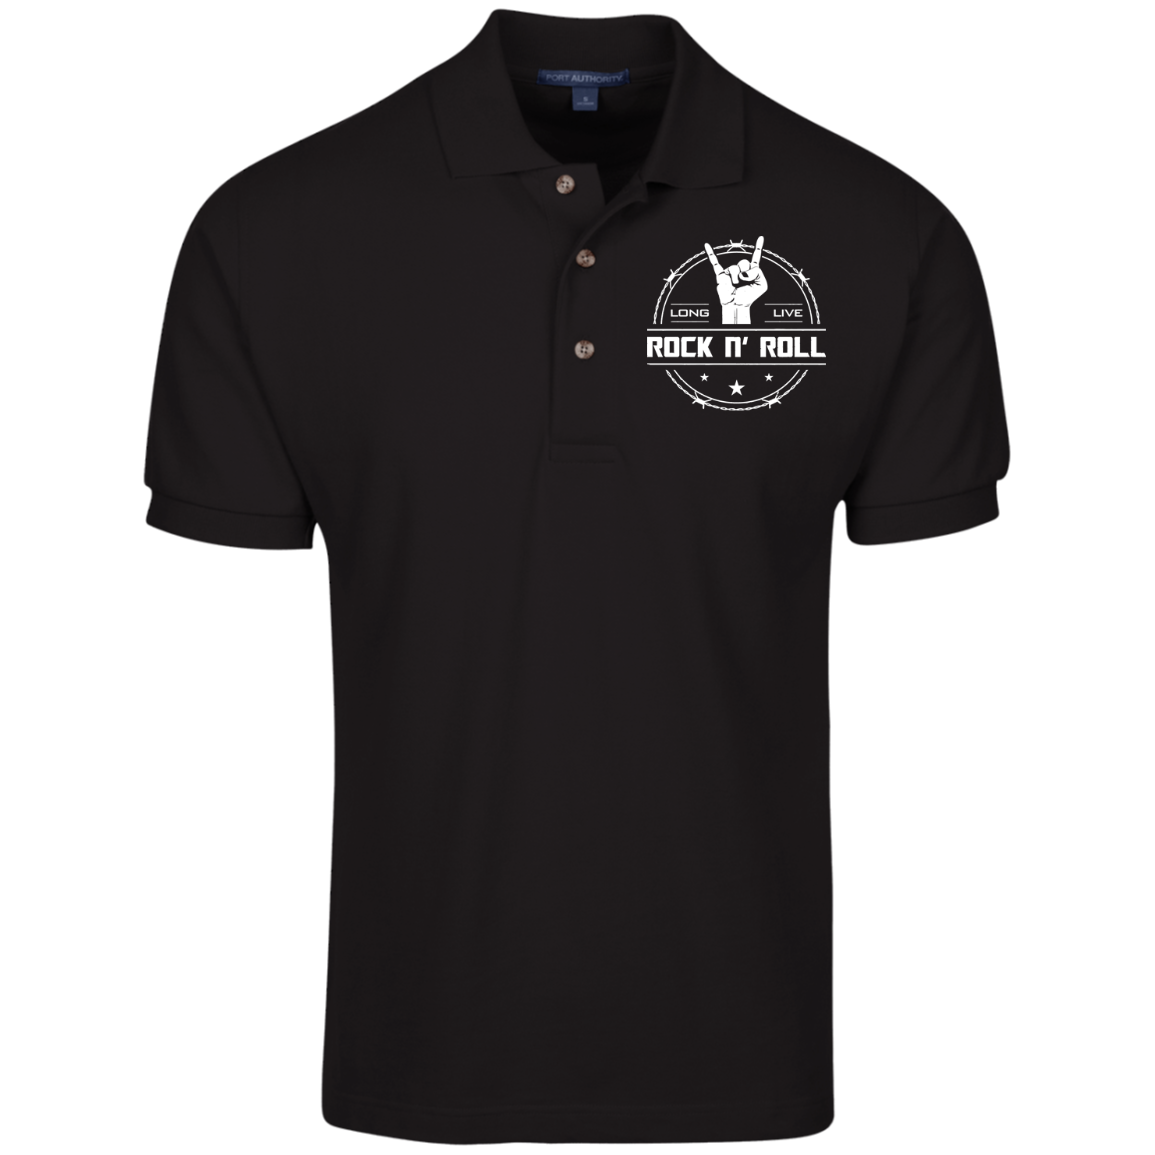 cool long live rock and roll polo shirt